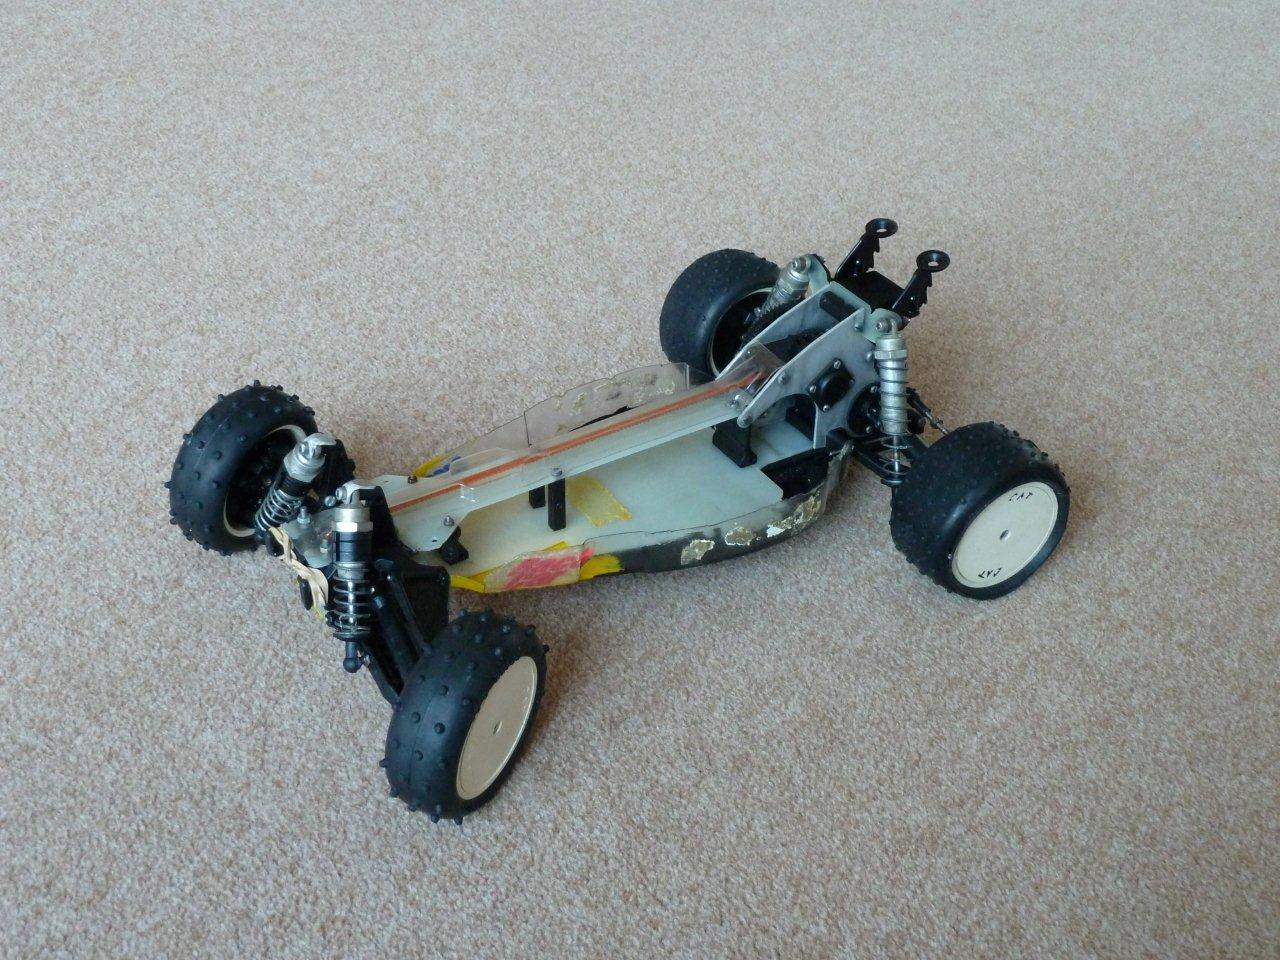 kyosho lazer zx 5 manual